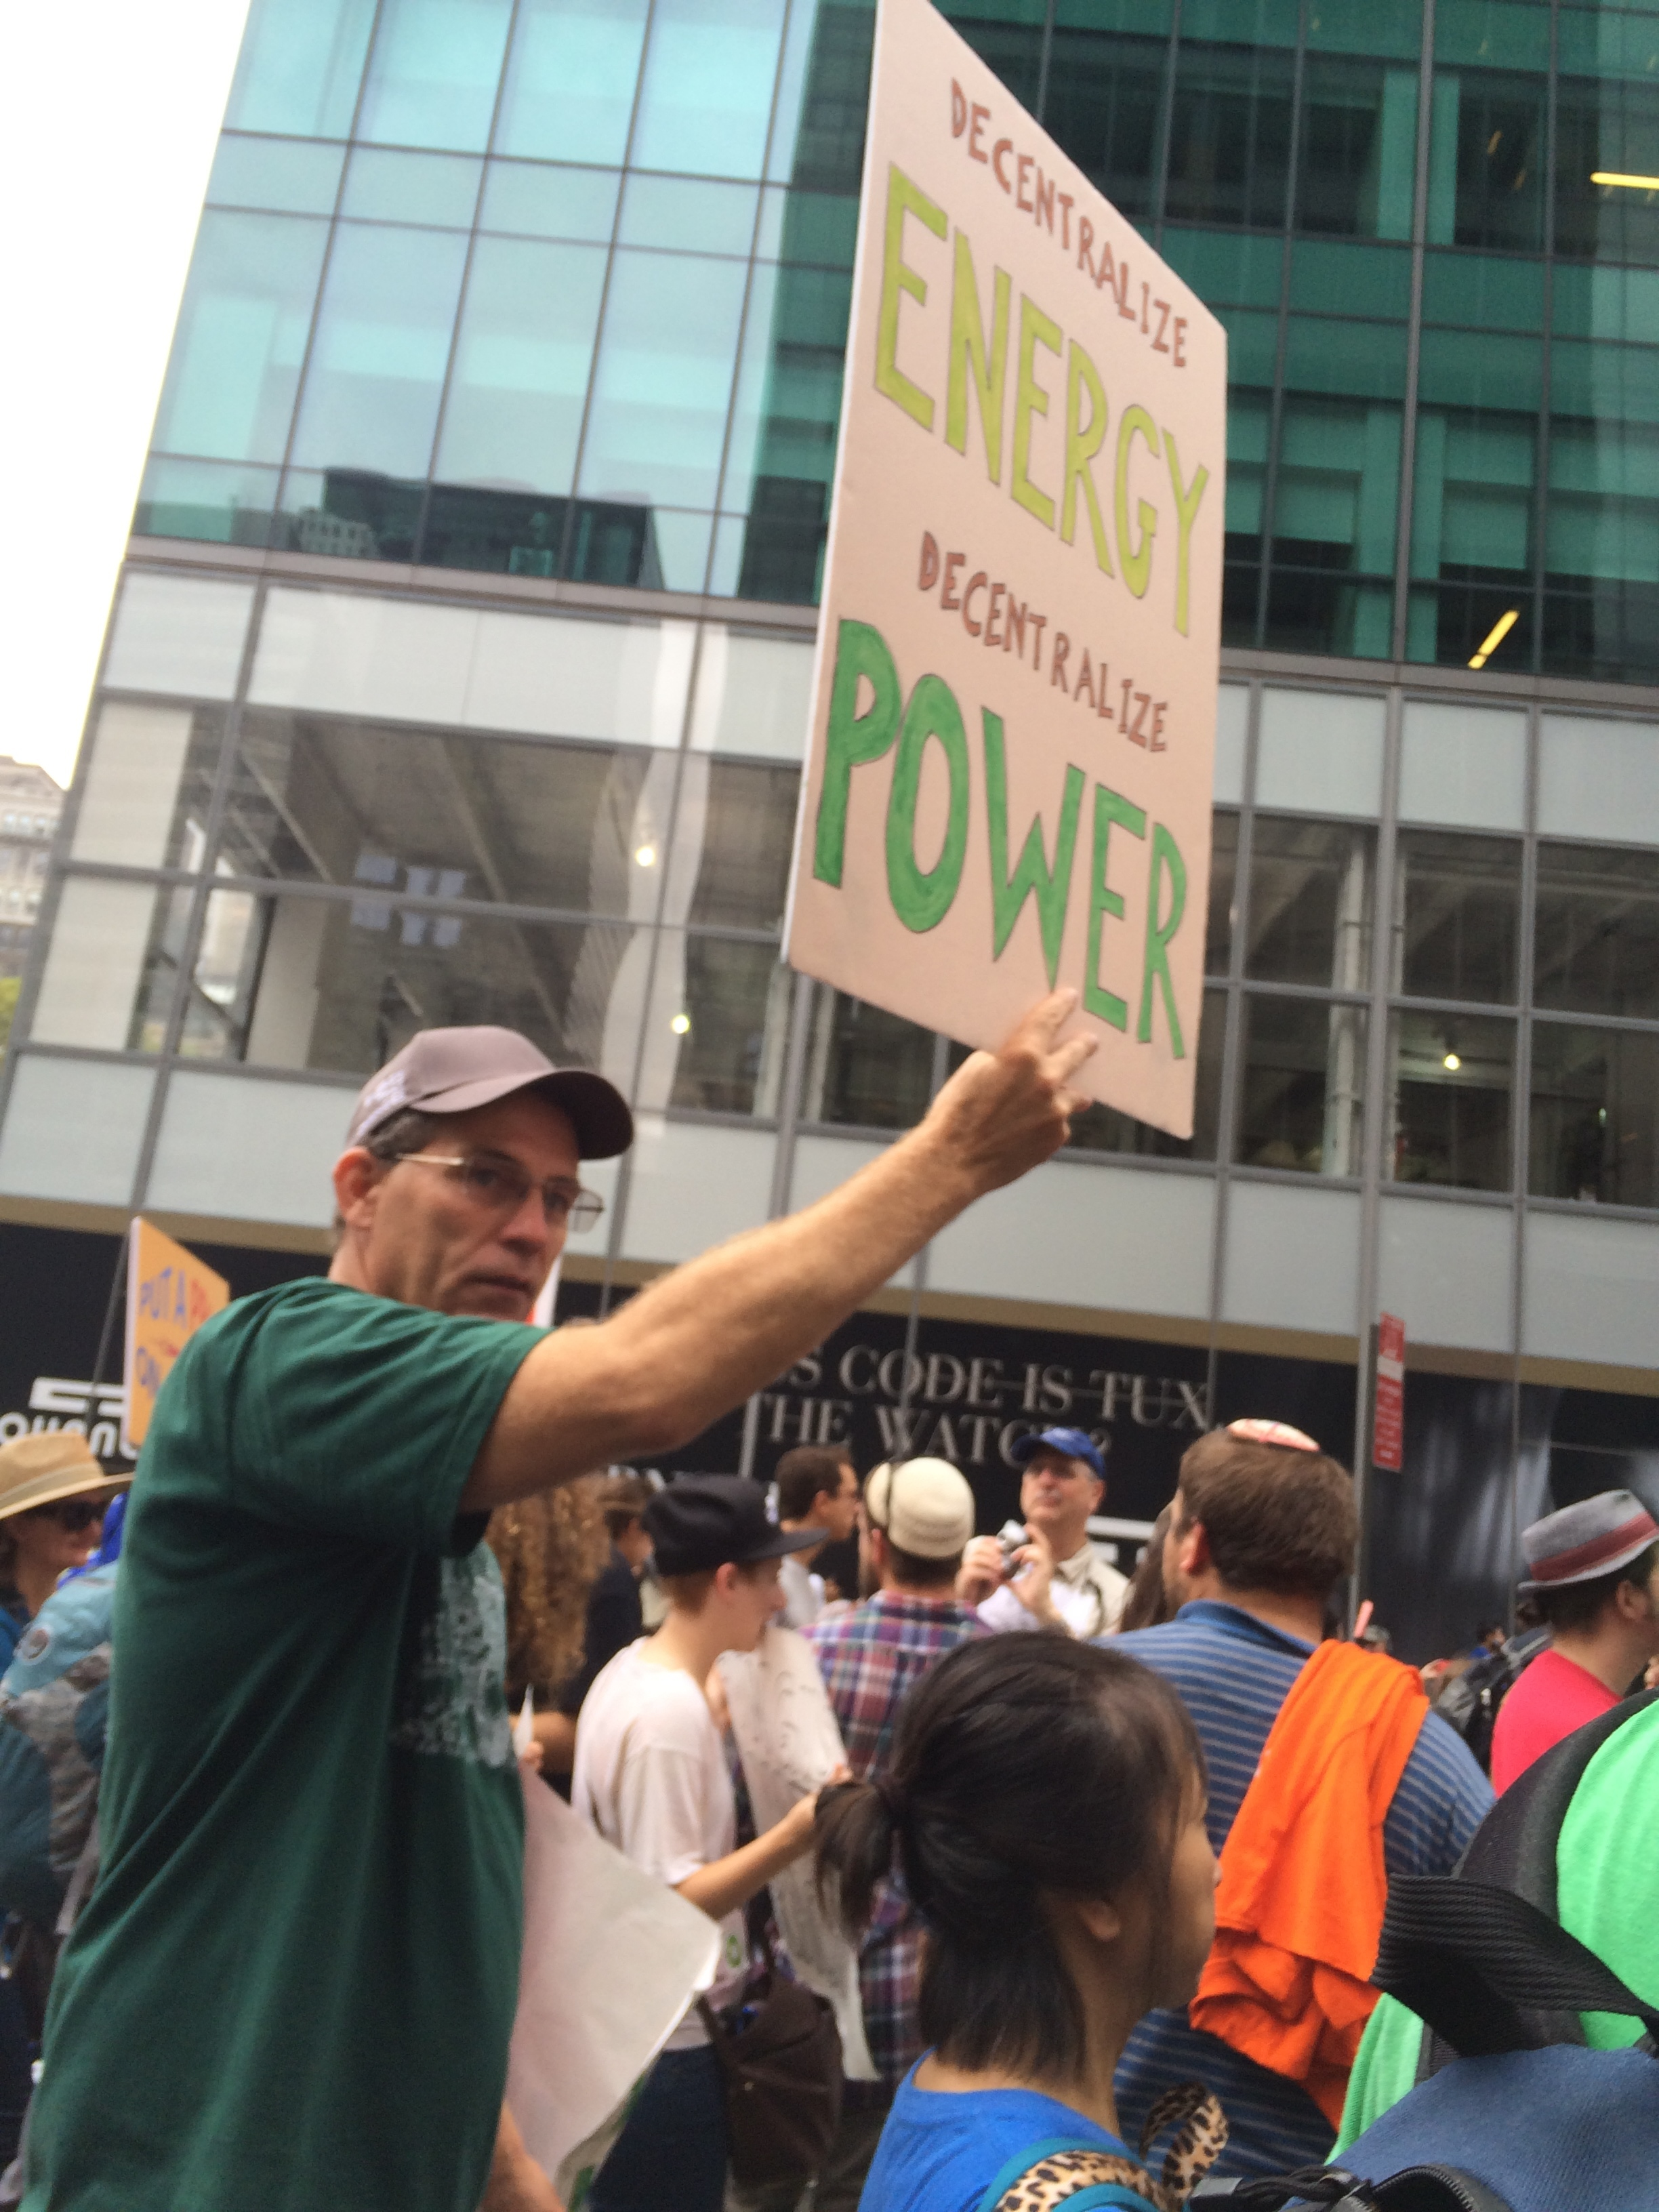 A fellow-traveler in the Peoples Climate March